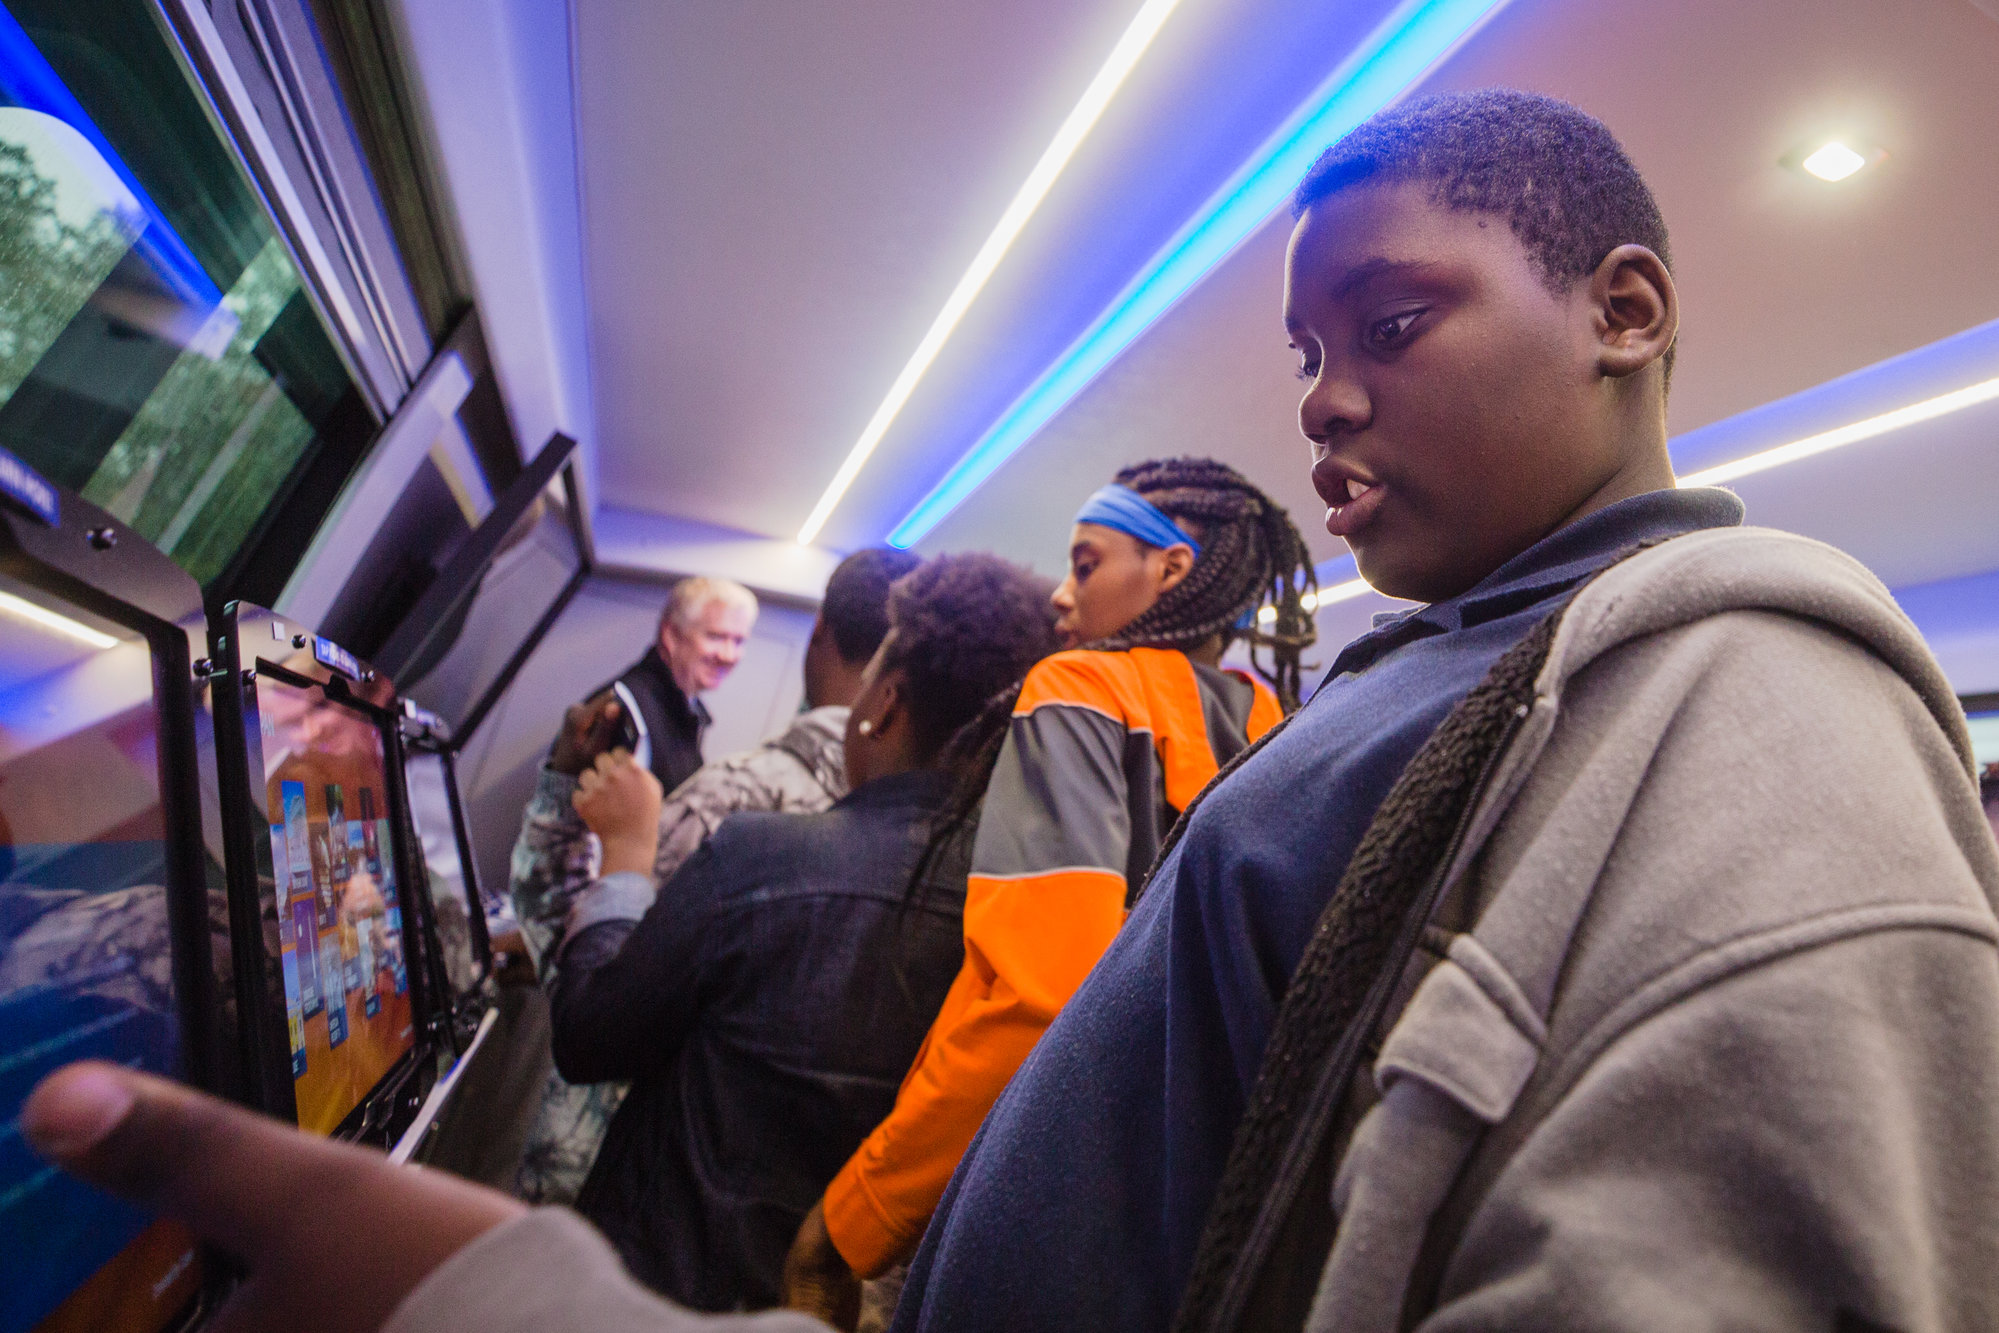 Eighth-graders from R.E. Davis College Preparatory Academy learned about C-SPAN's educational programming covering the legislative branch of the U.S. government on board the CSPAN bus Tuesday.